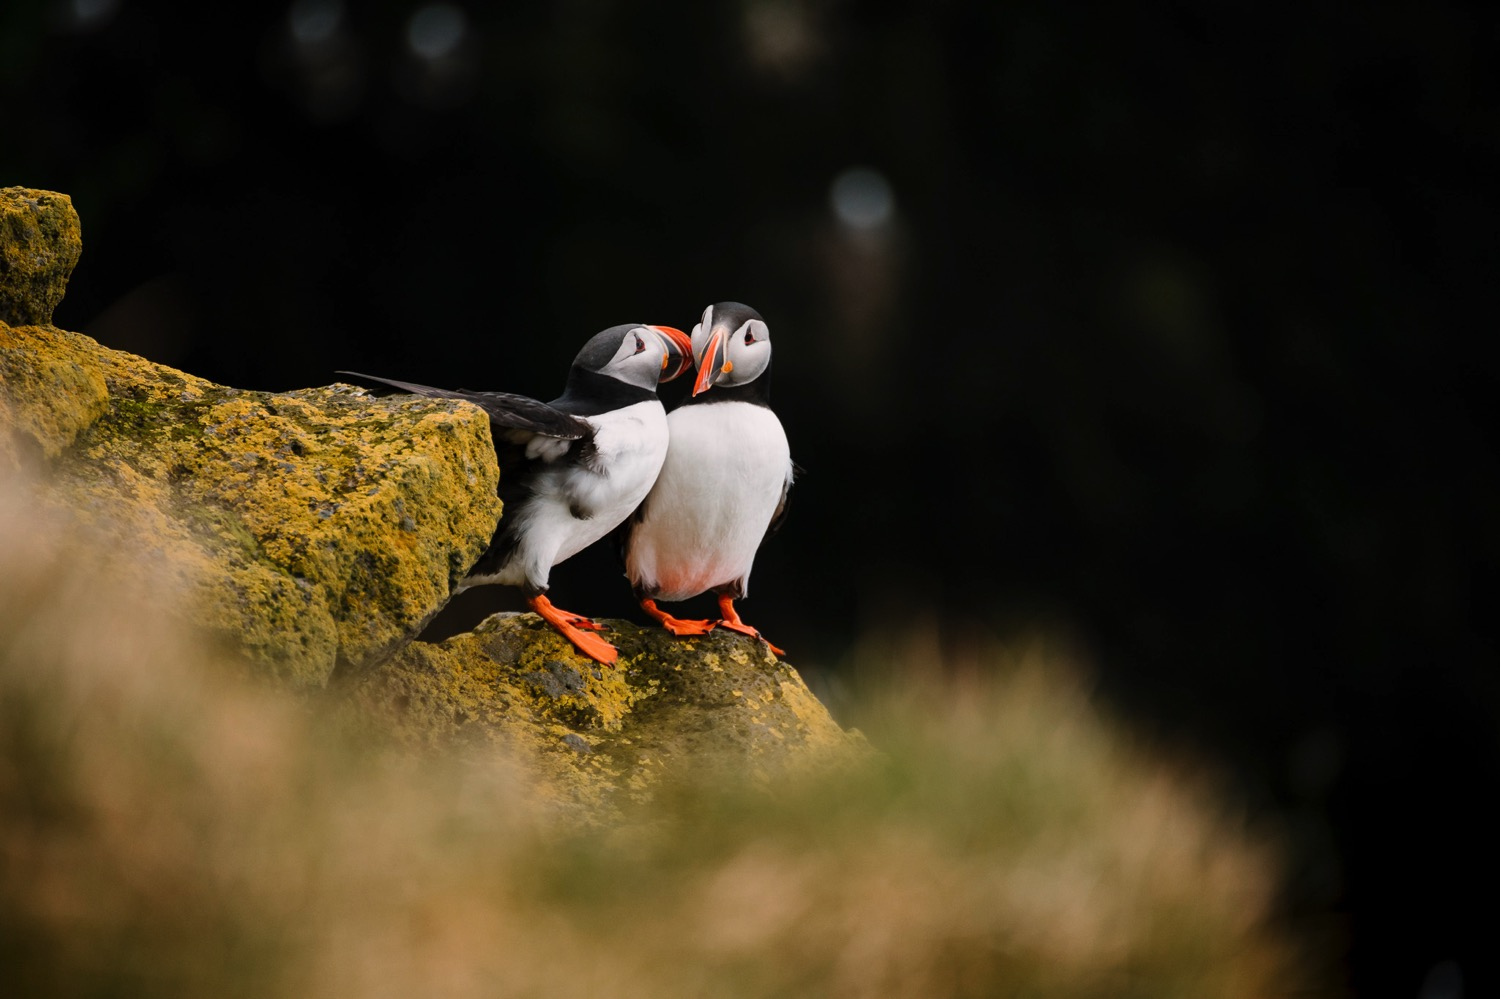 Cuddling Puffins - Iceland Blog Part II